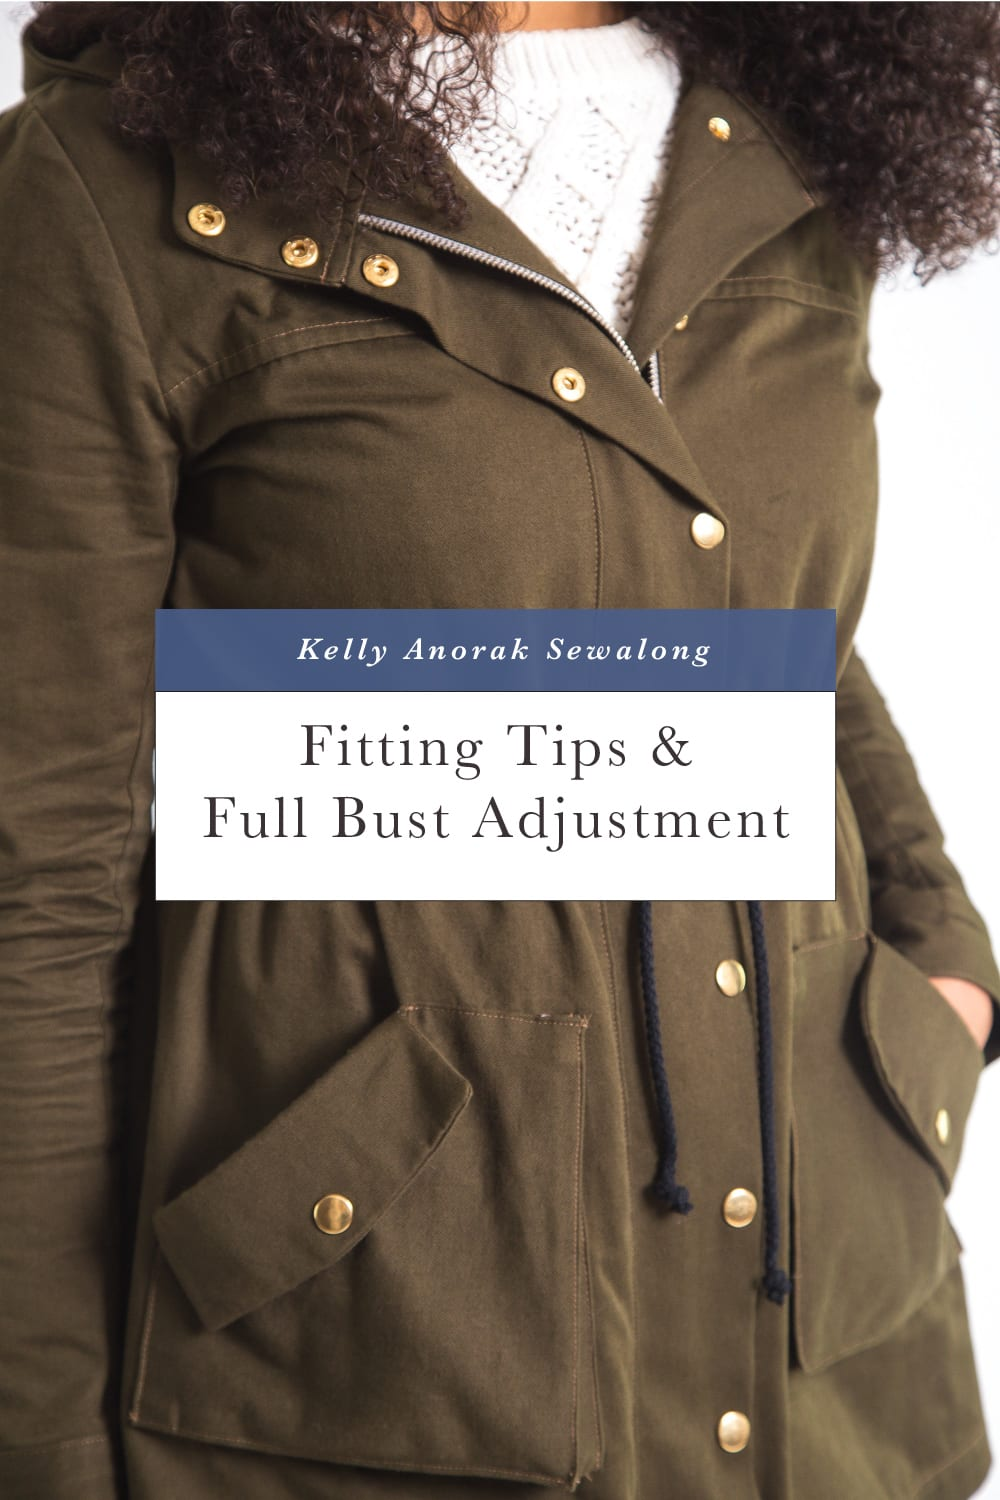 Tips for fitting a jacket and a full bust adjustment for a dartless bodice // Kelly Anorak Sewalong